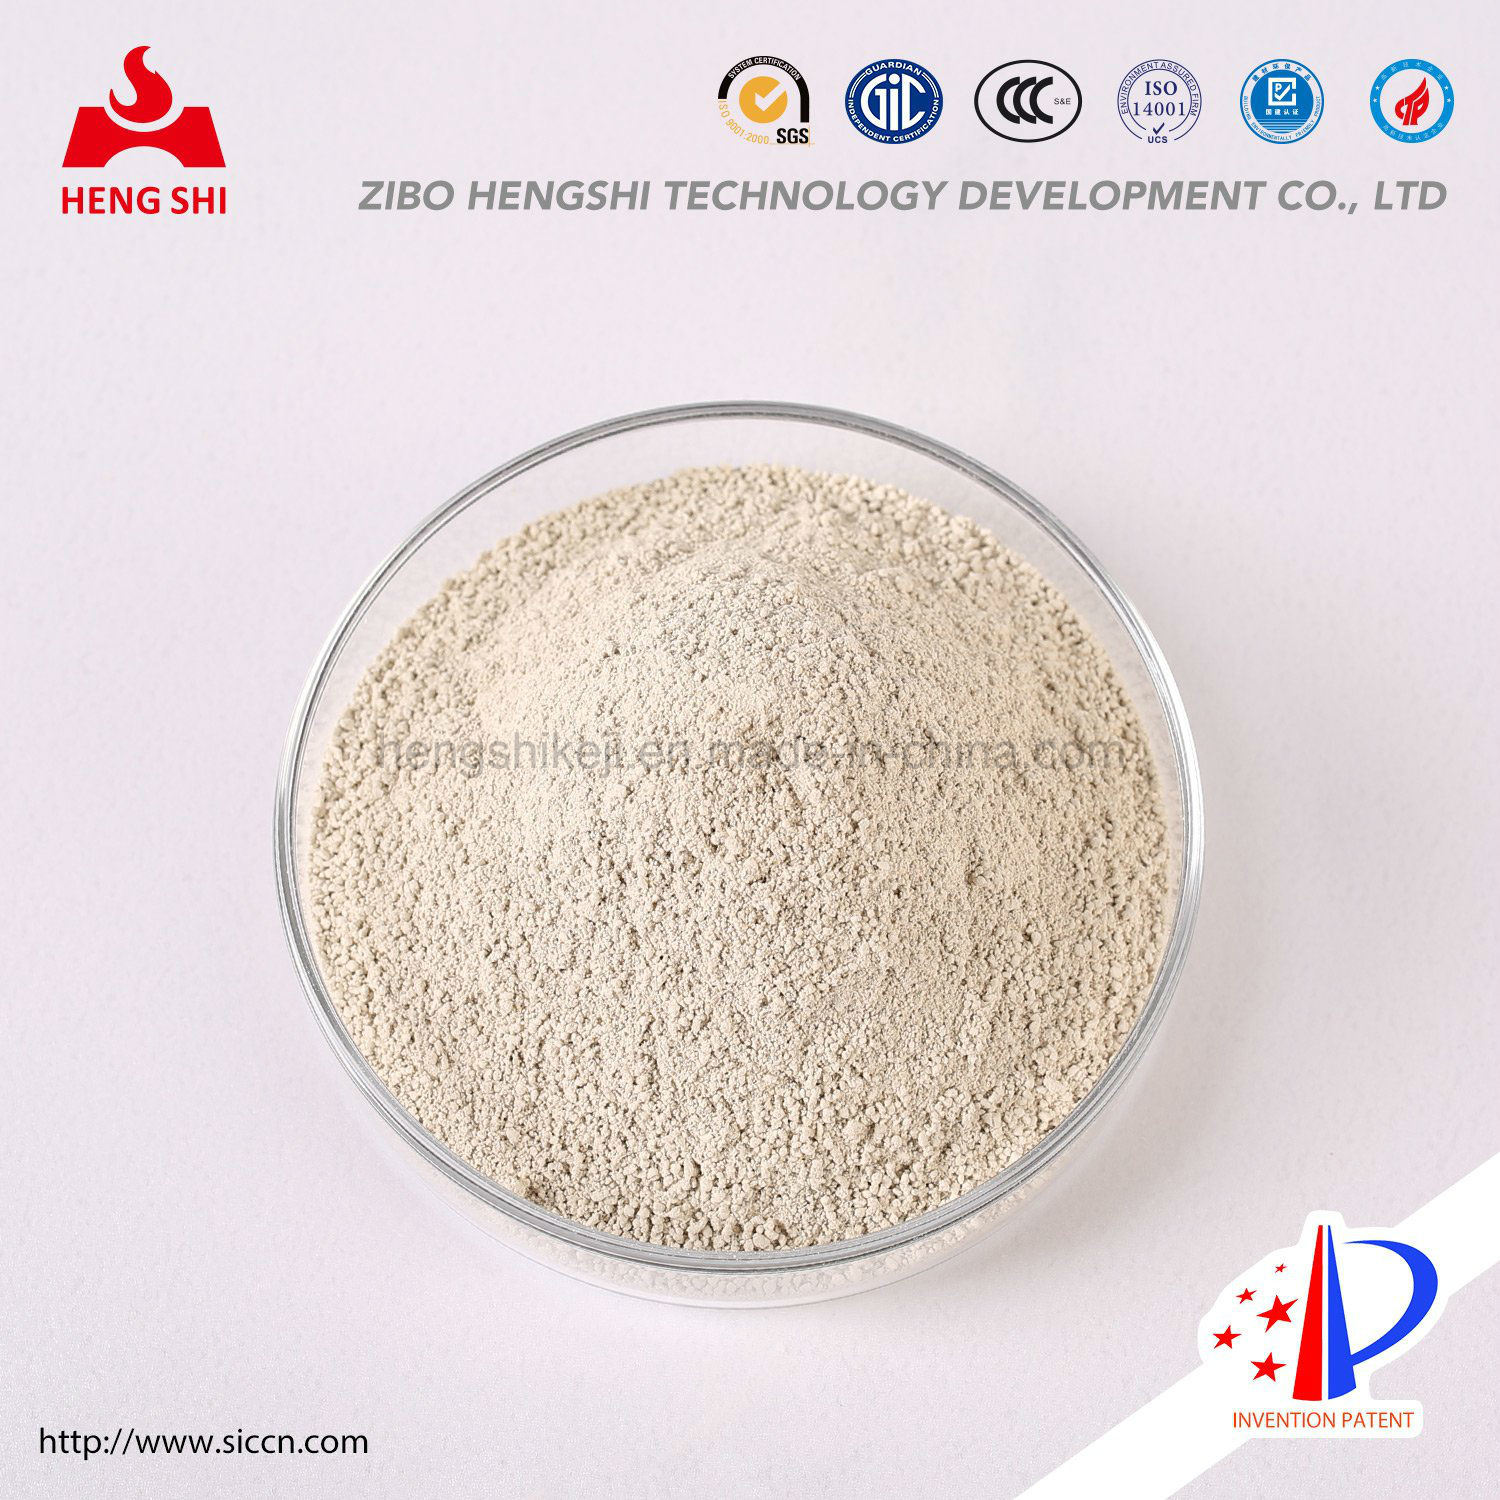 Si3n4 Ceramic Bearing Material Silicon Nitride Powder